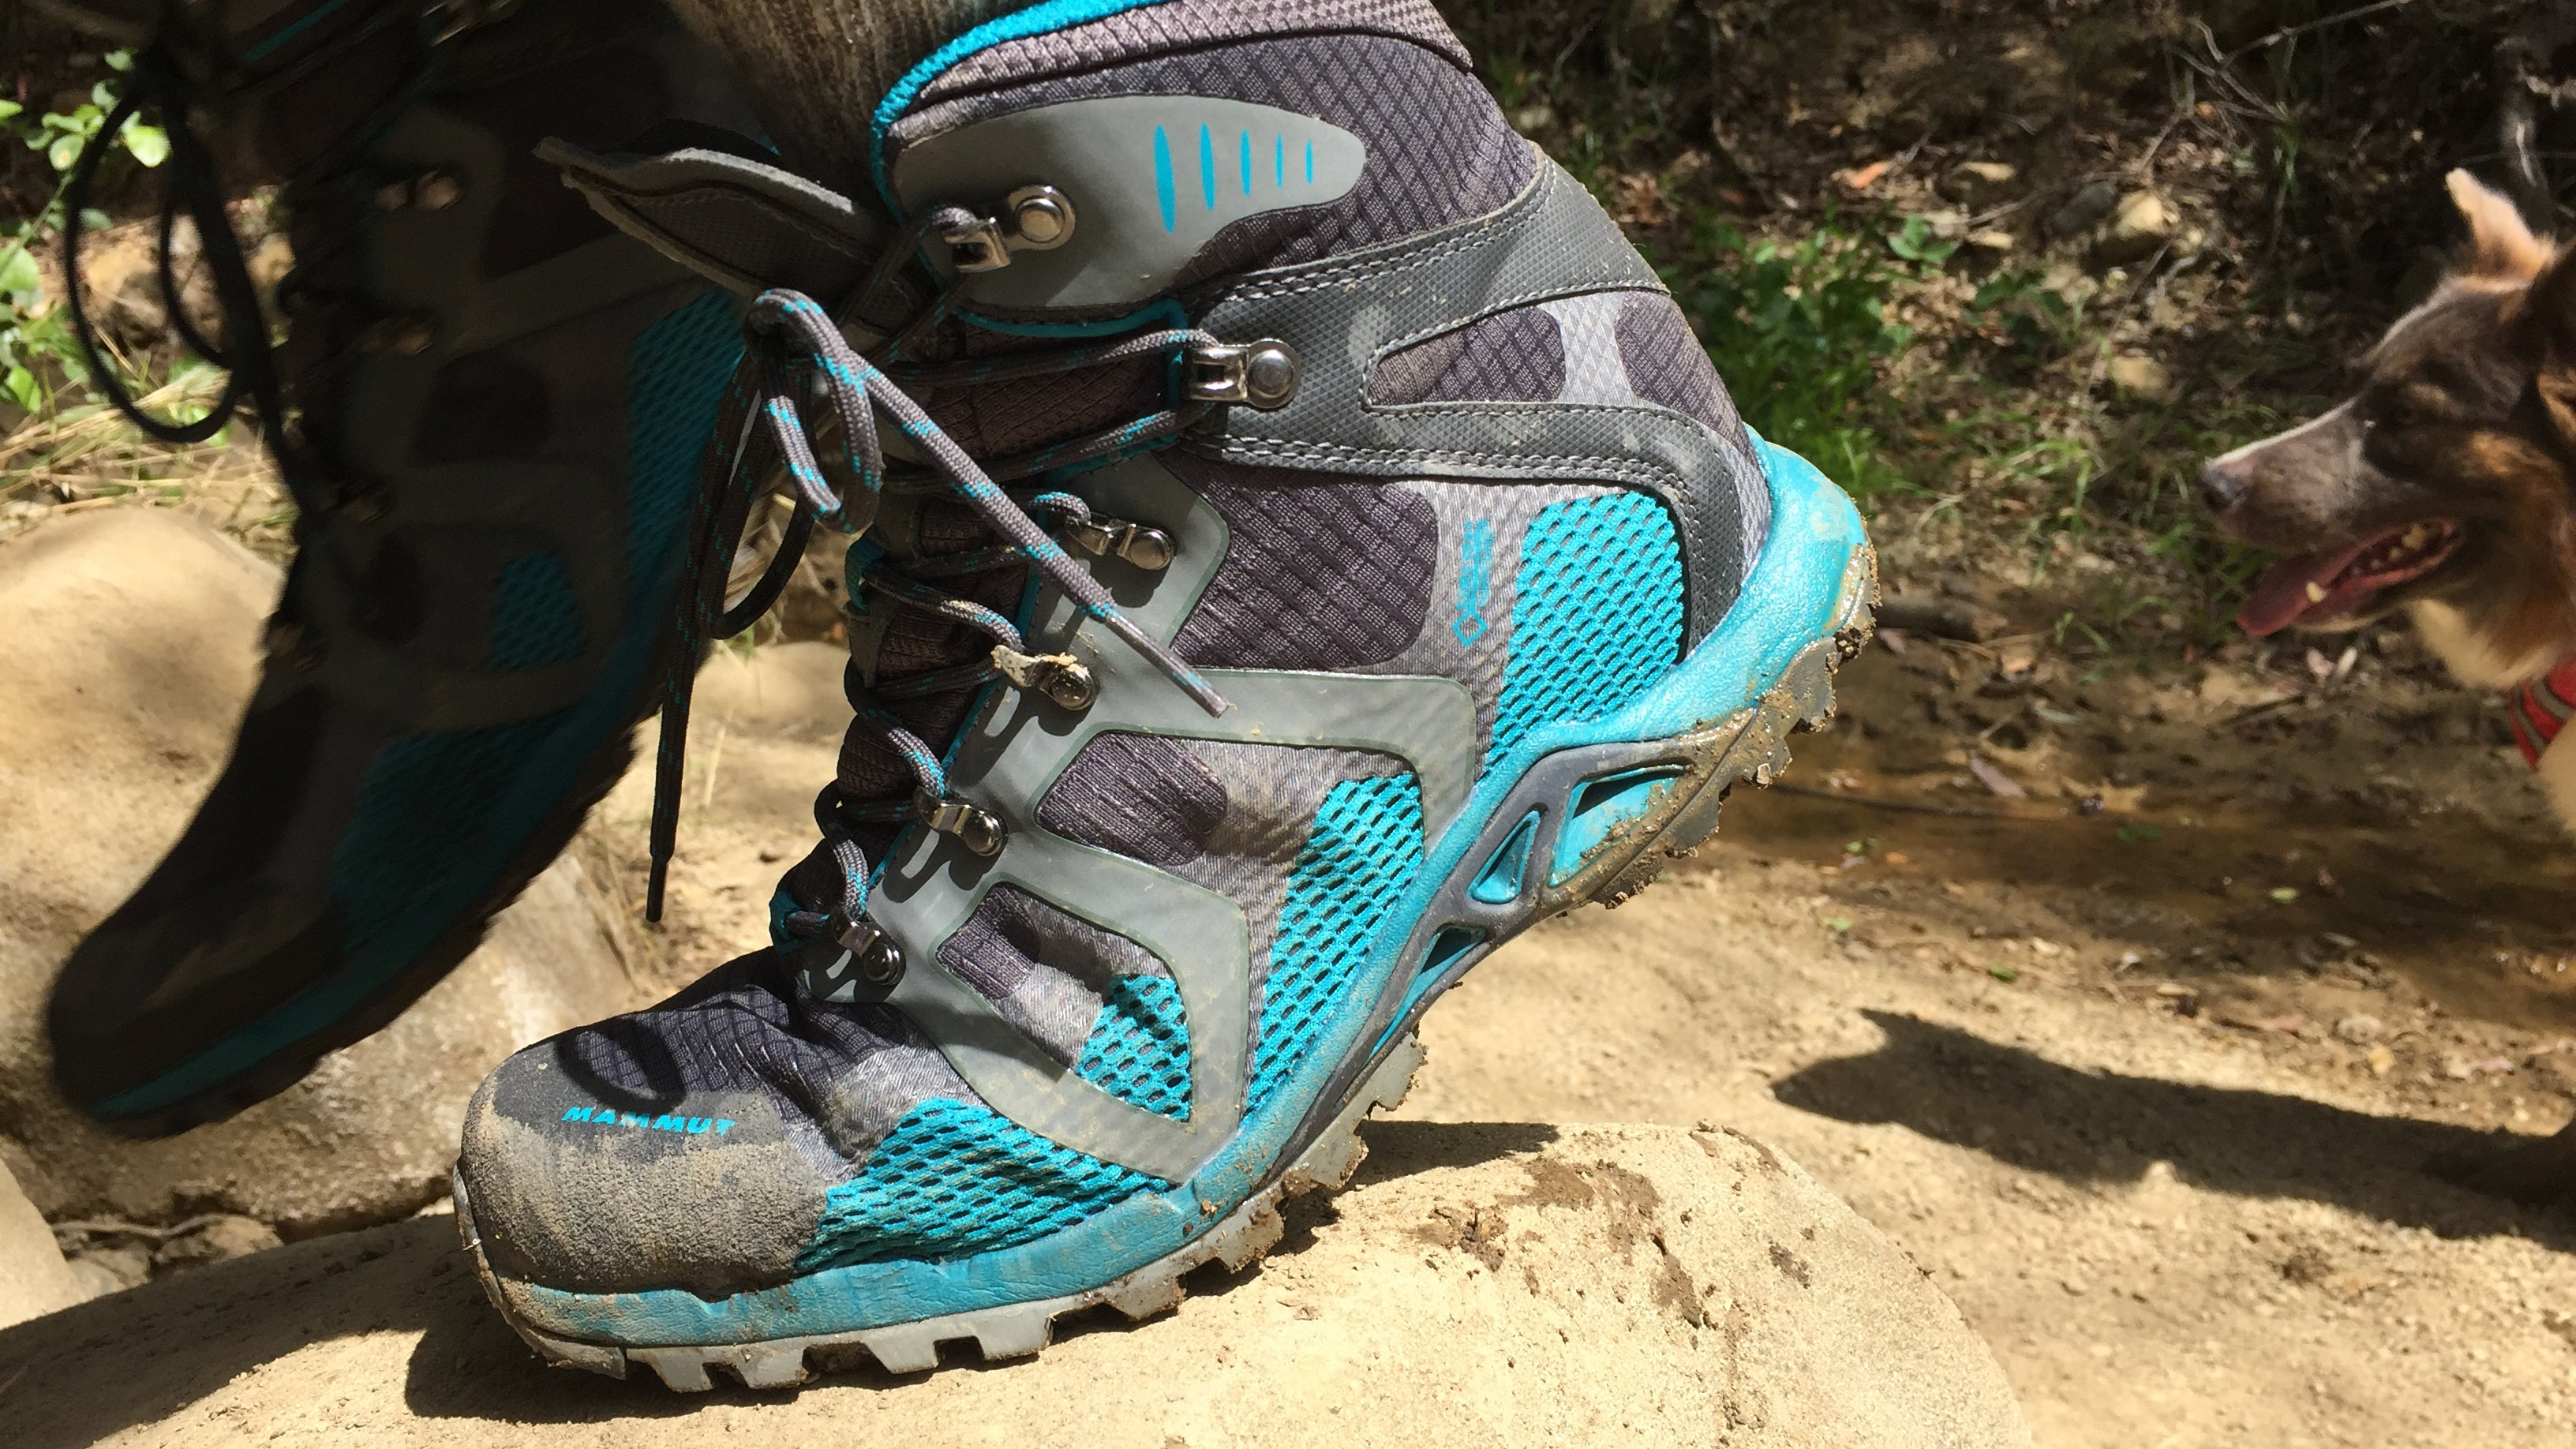 The Best Hiking Boots for Wide Feet - CocaSoberania